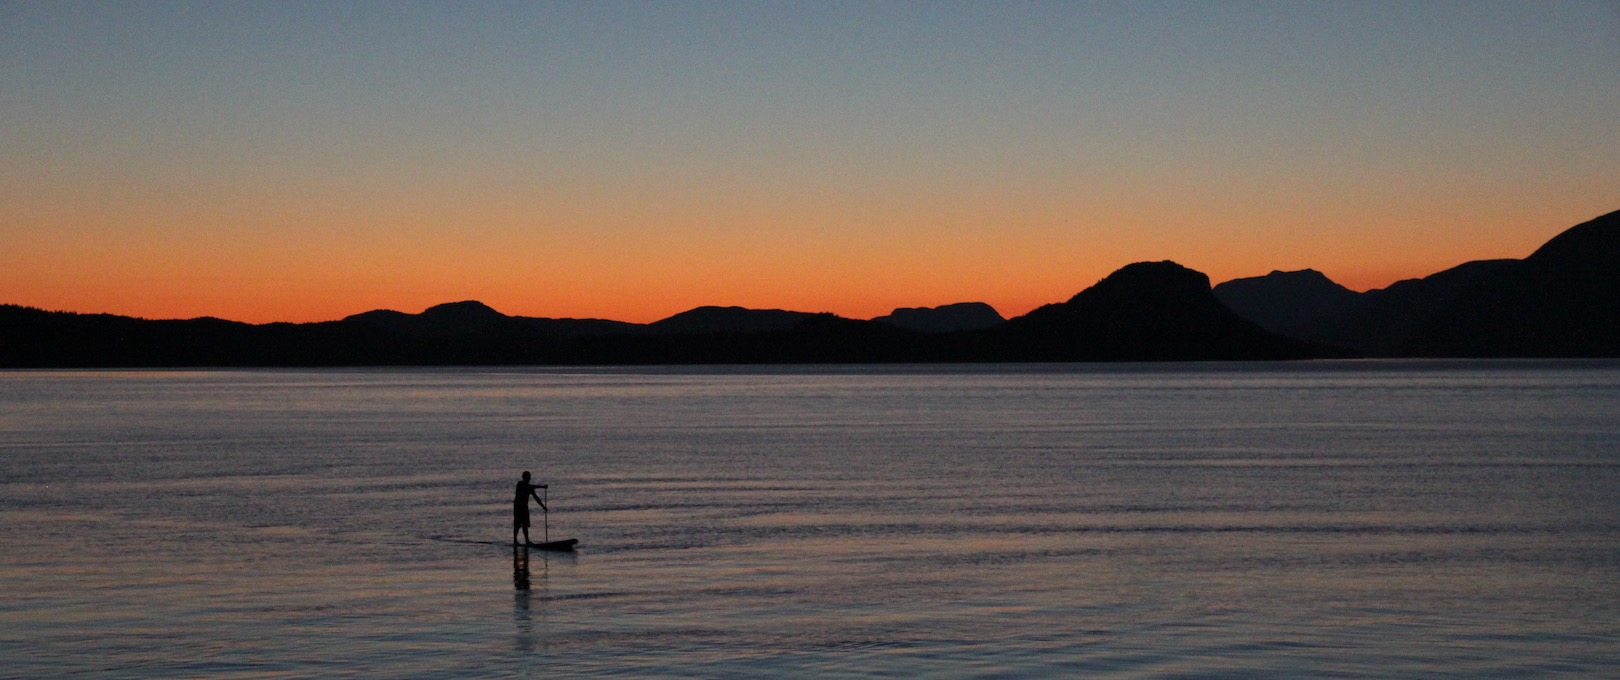 A man on a stand up paddle board with the sun setting behind him in Desolation Sound